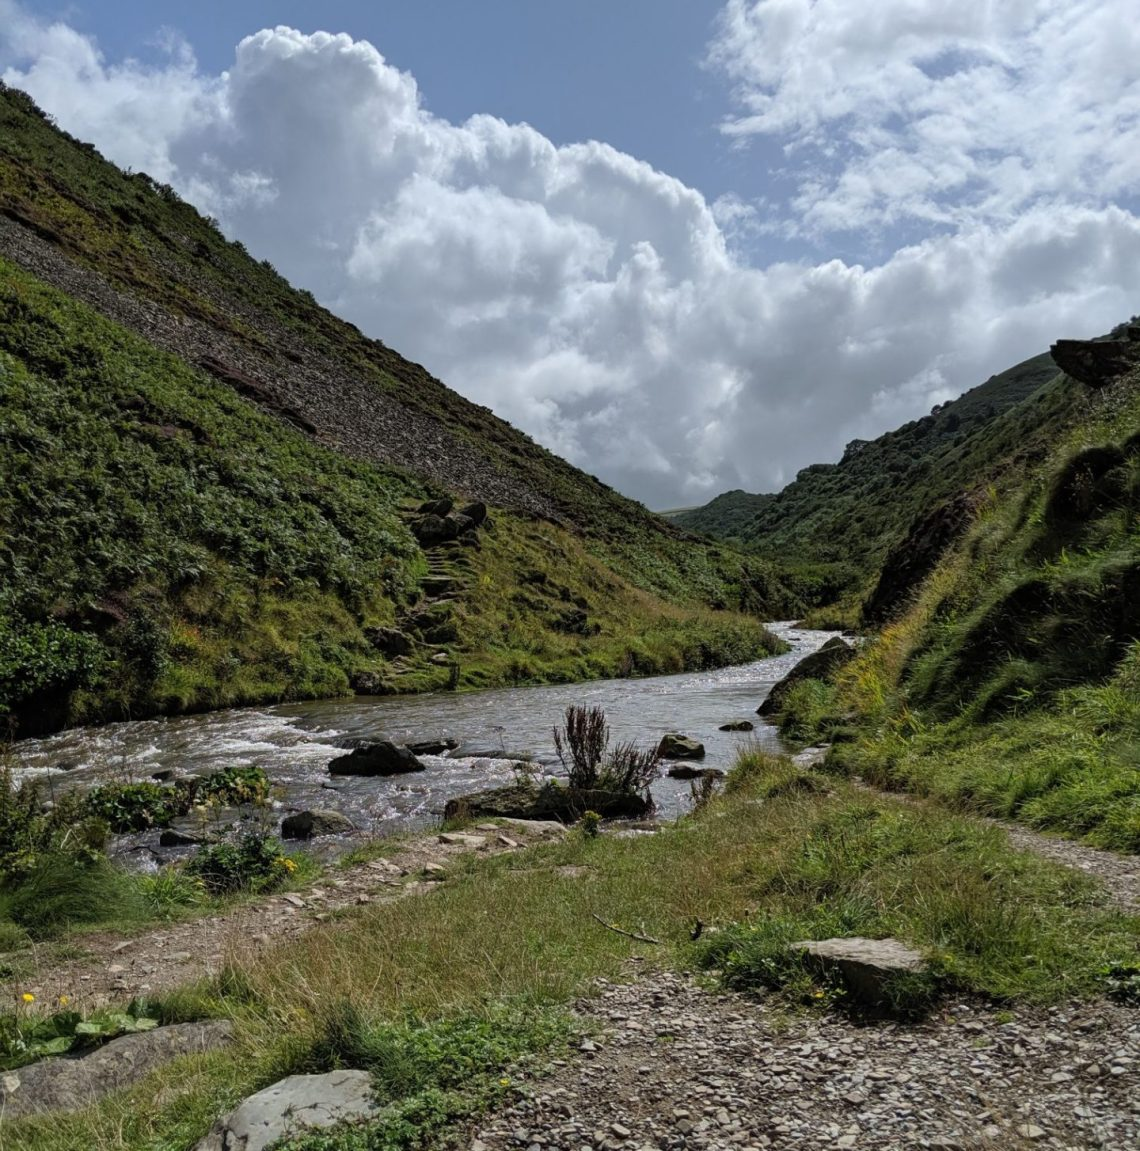 heddon valley small river surrounded by green hills and wild flowers